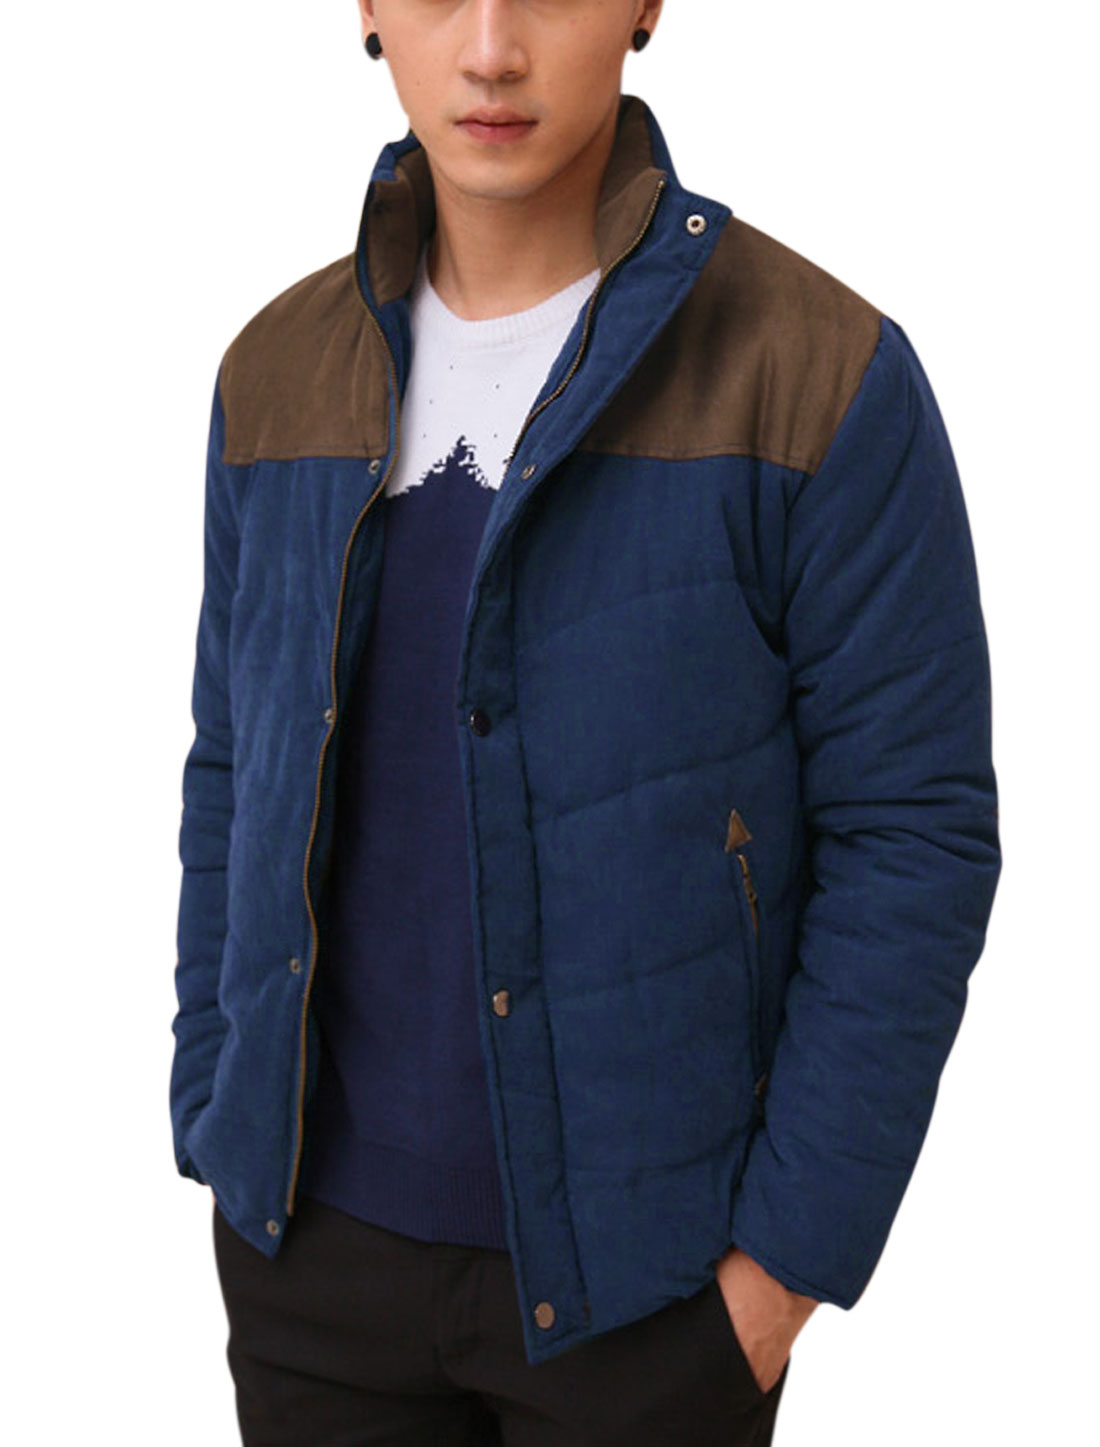 Men Convertible Collar Contrast Color Faux Suede Panel Padded Jacket Navy Blue M